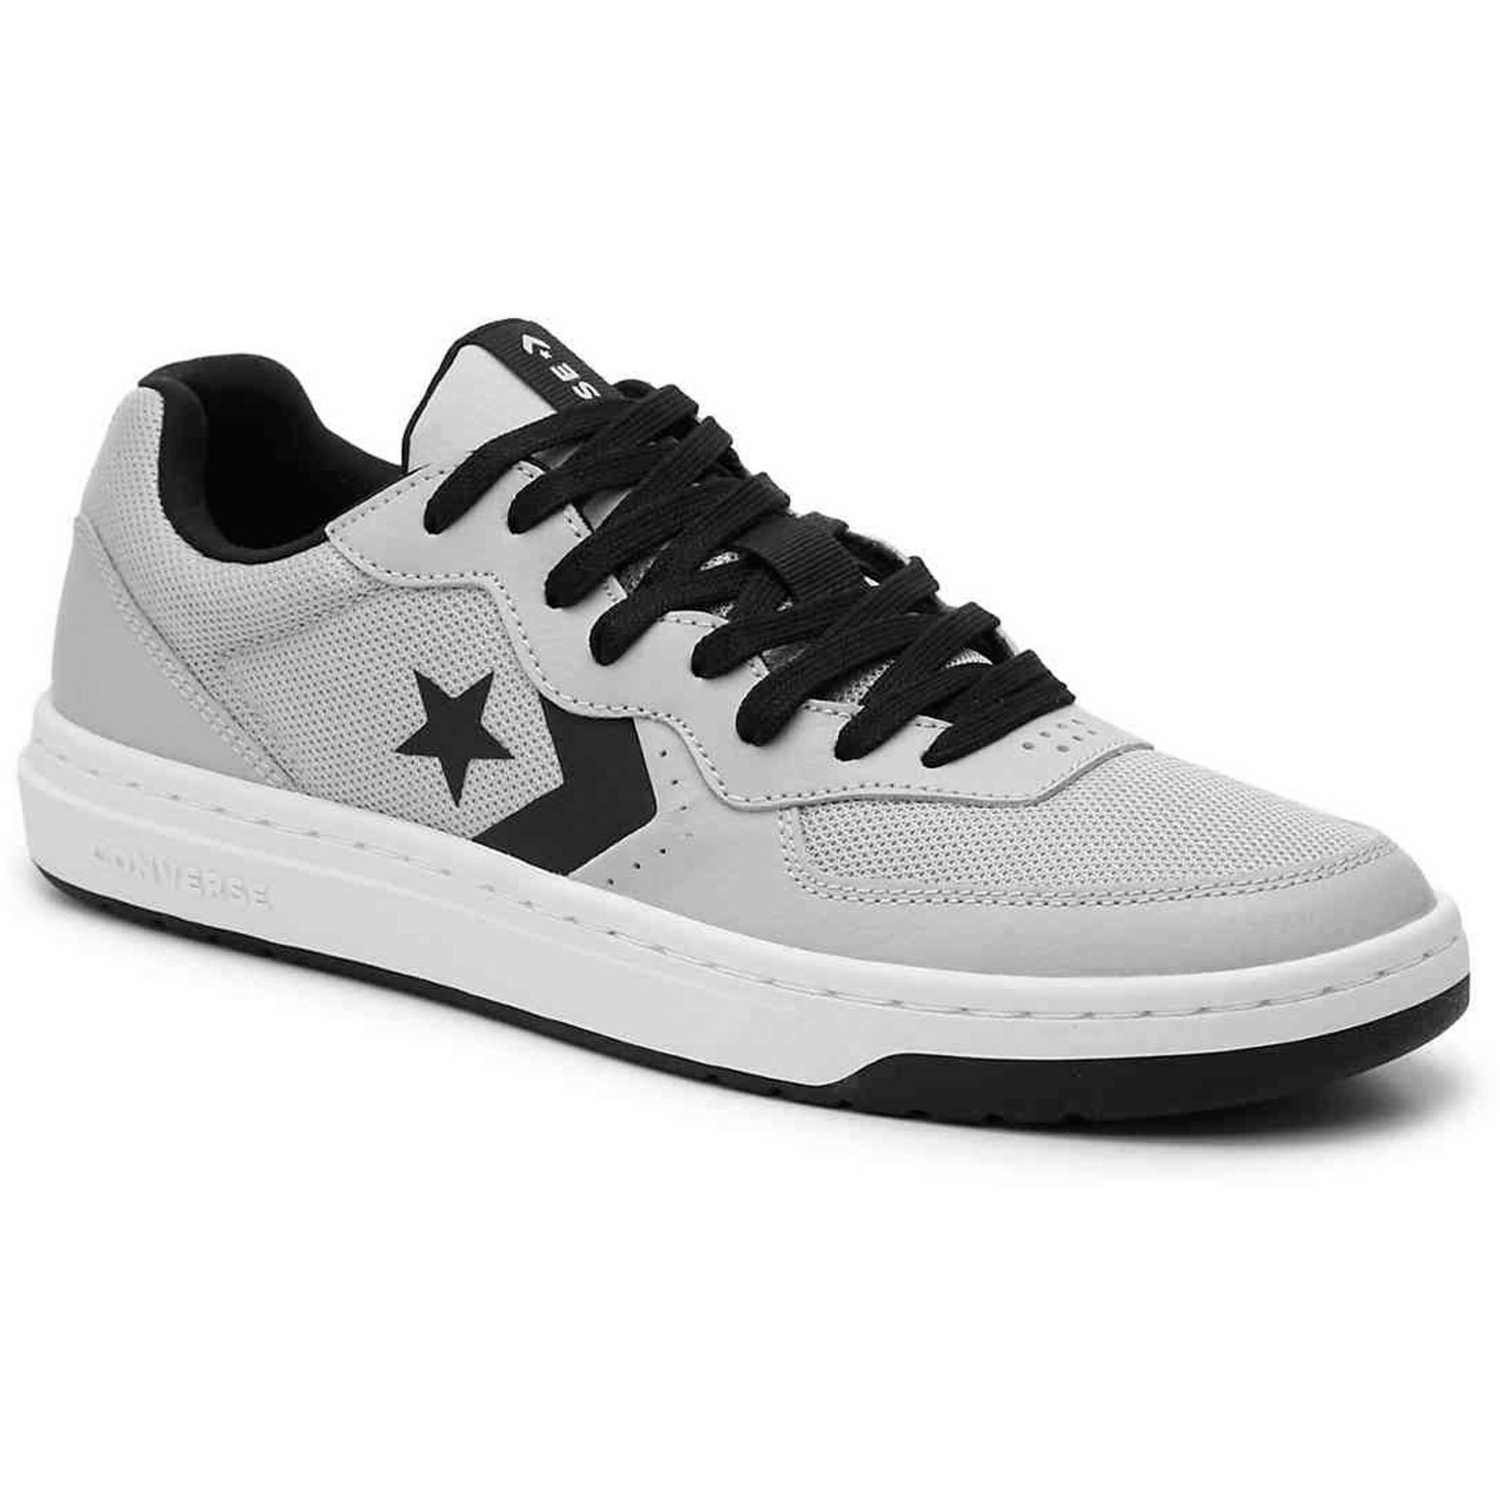 Converse converse rival leather ox Gris / negro Walking